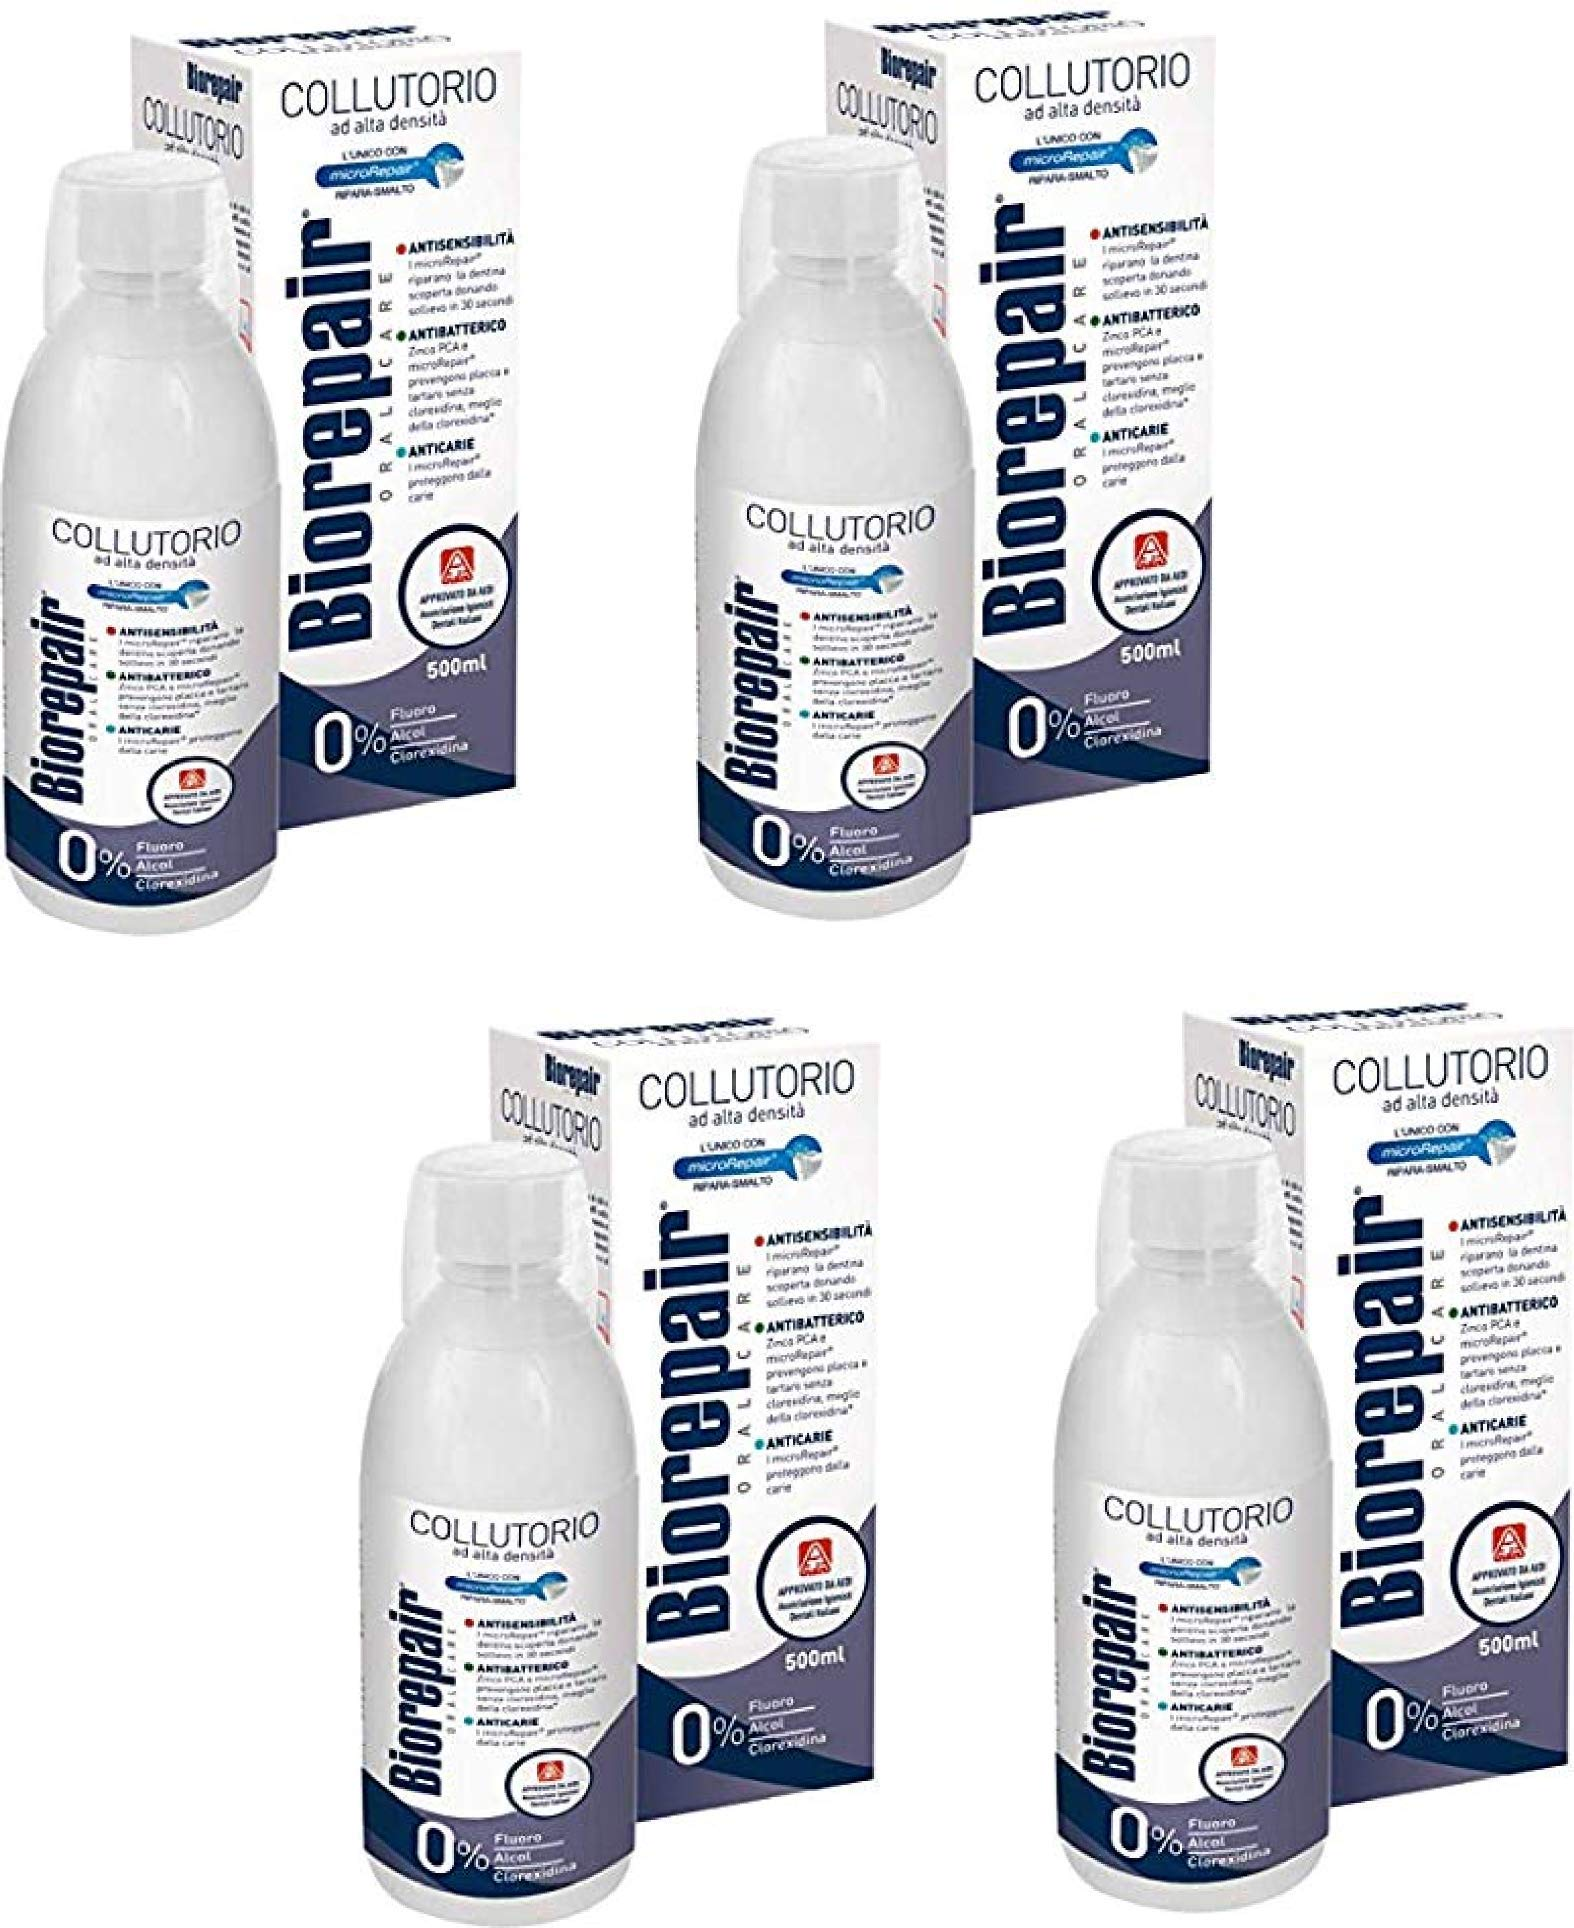 Biorepair:'' Collutorio'' Mouthwash with Antibacterical - 500ml/16.9 fl.oz - Pack of 4 by Biorepair